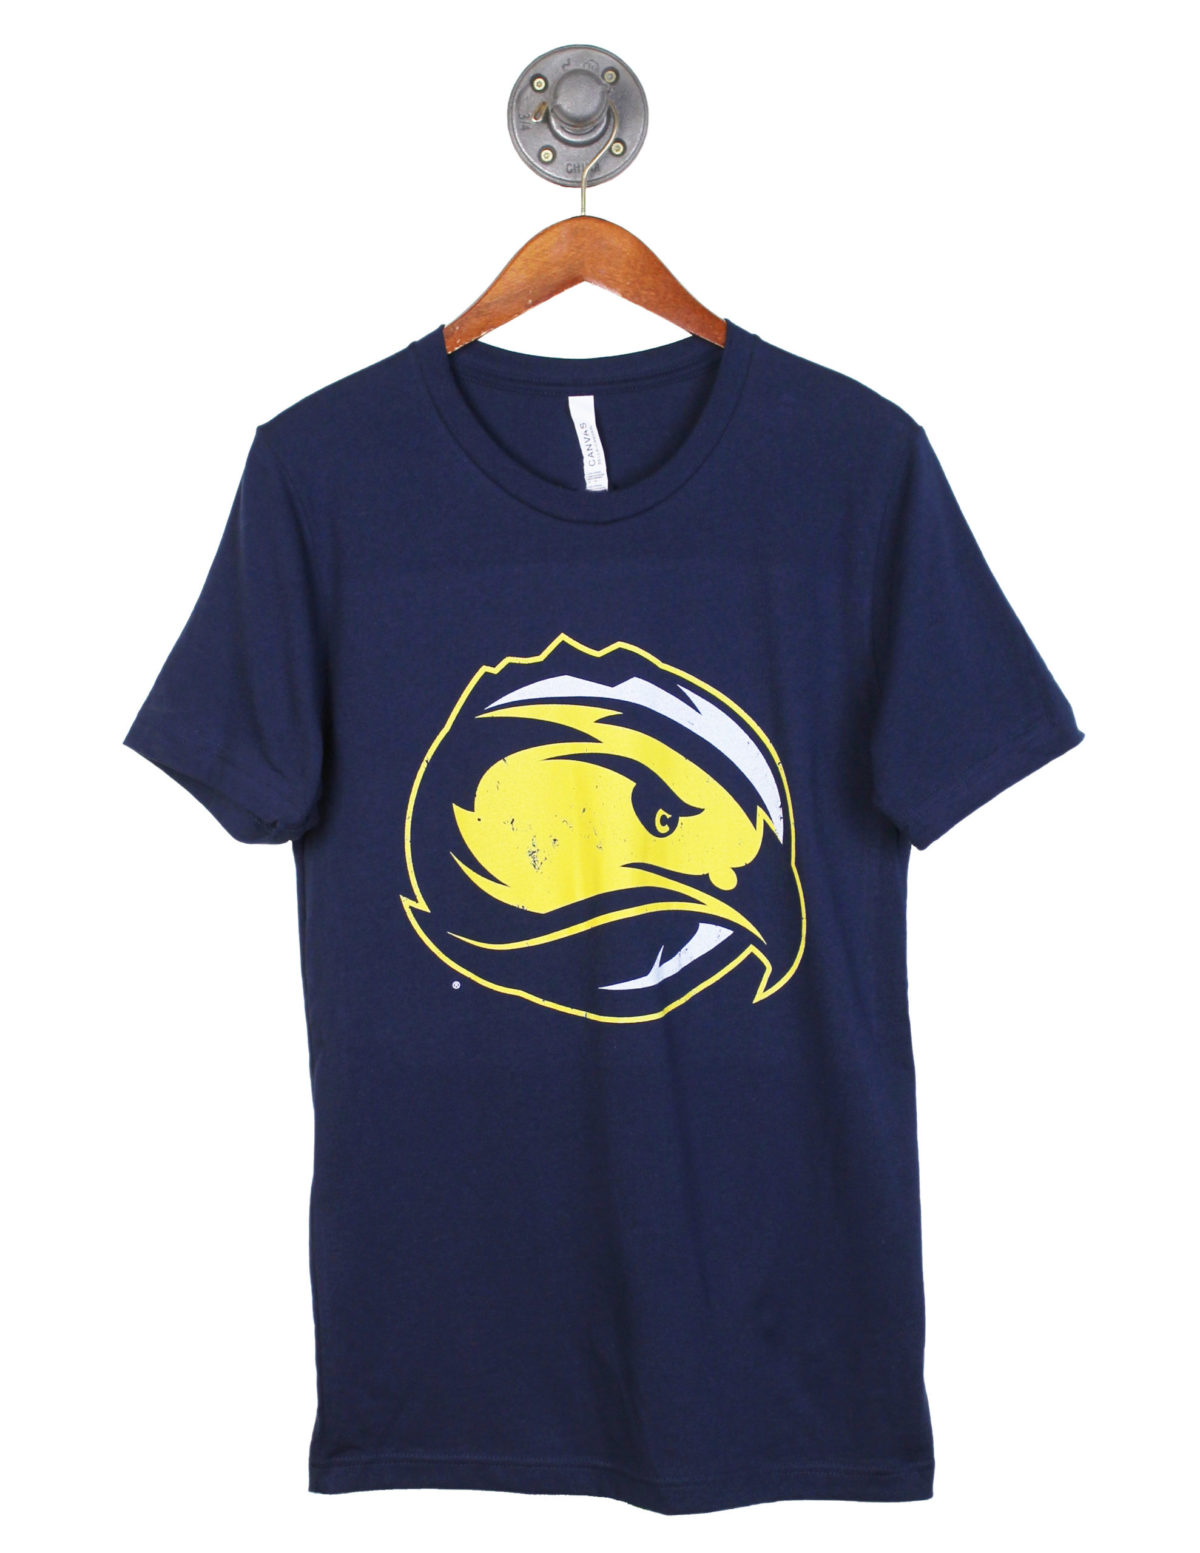 Fort Lewis College Sky Hawks logo short sleeve tshirt Barefoot Campus Outfitter